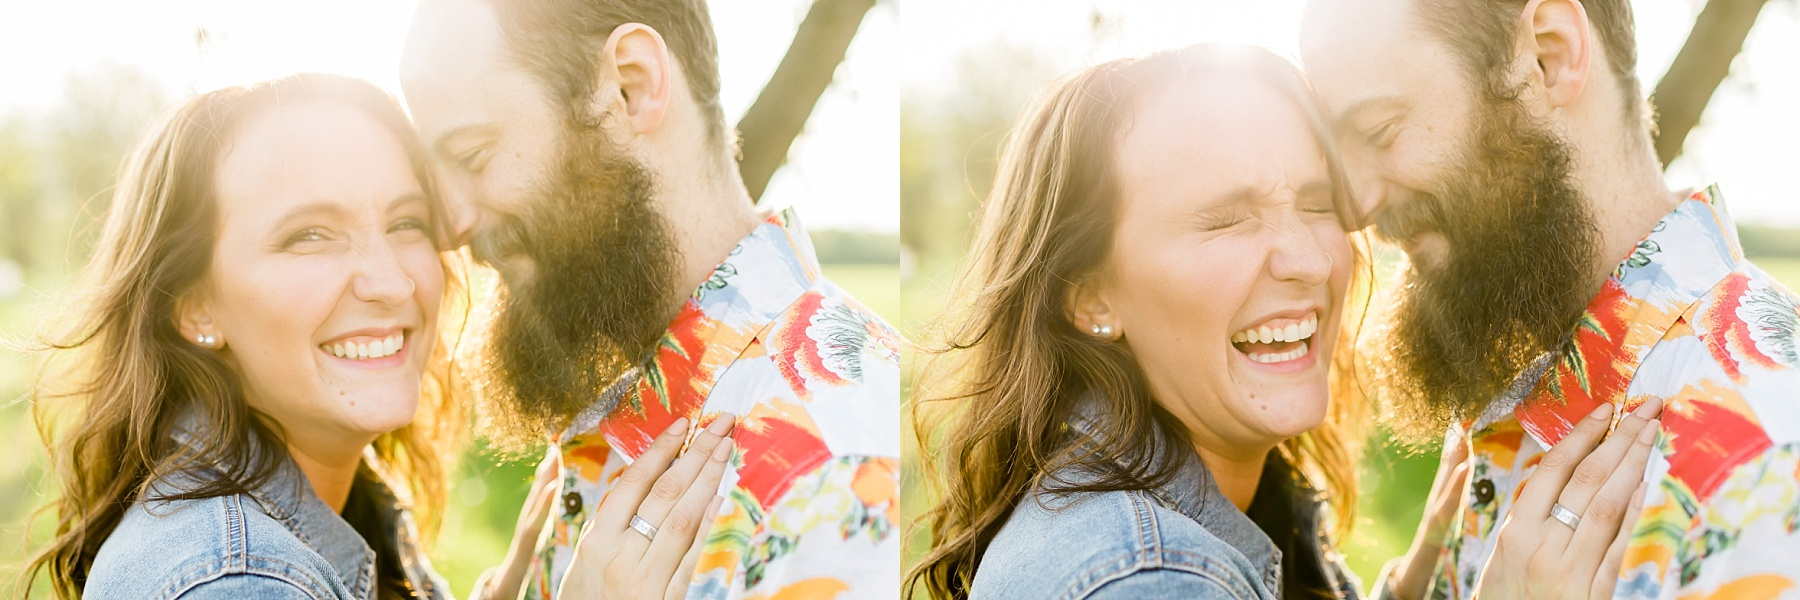 monticello indiana wedding engagement photography simple adventure weird_0043.jpg